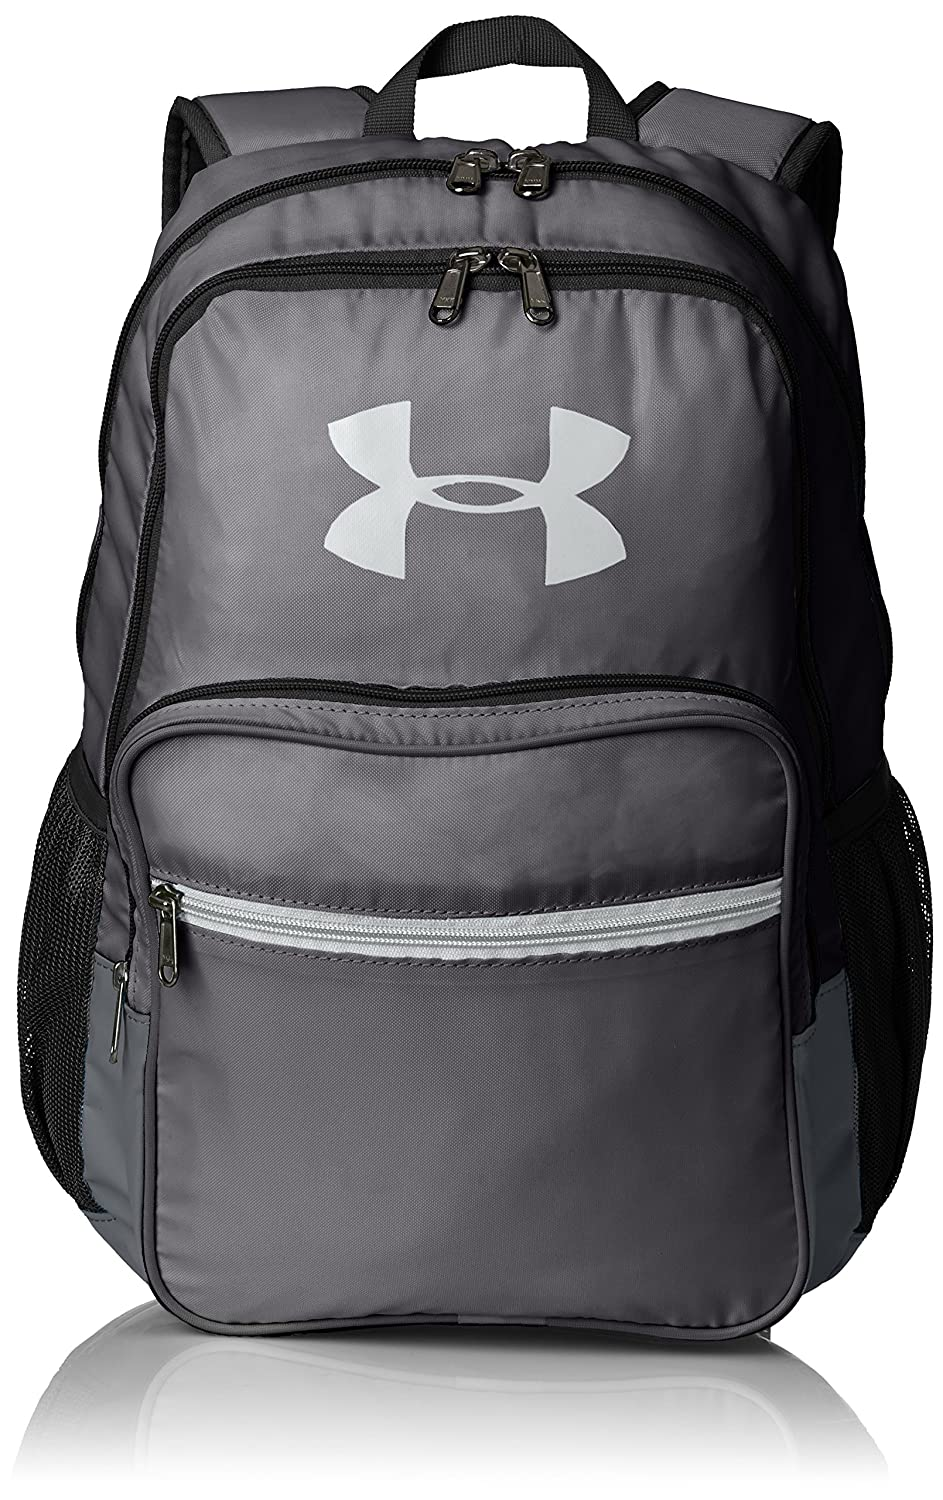 Cross border:- Under Armour Boys' Hall of Fame Backpack low price